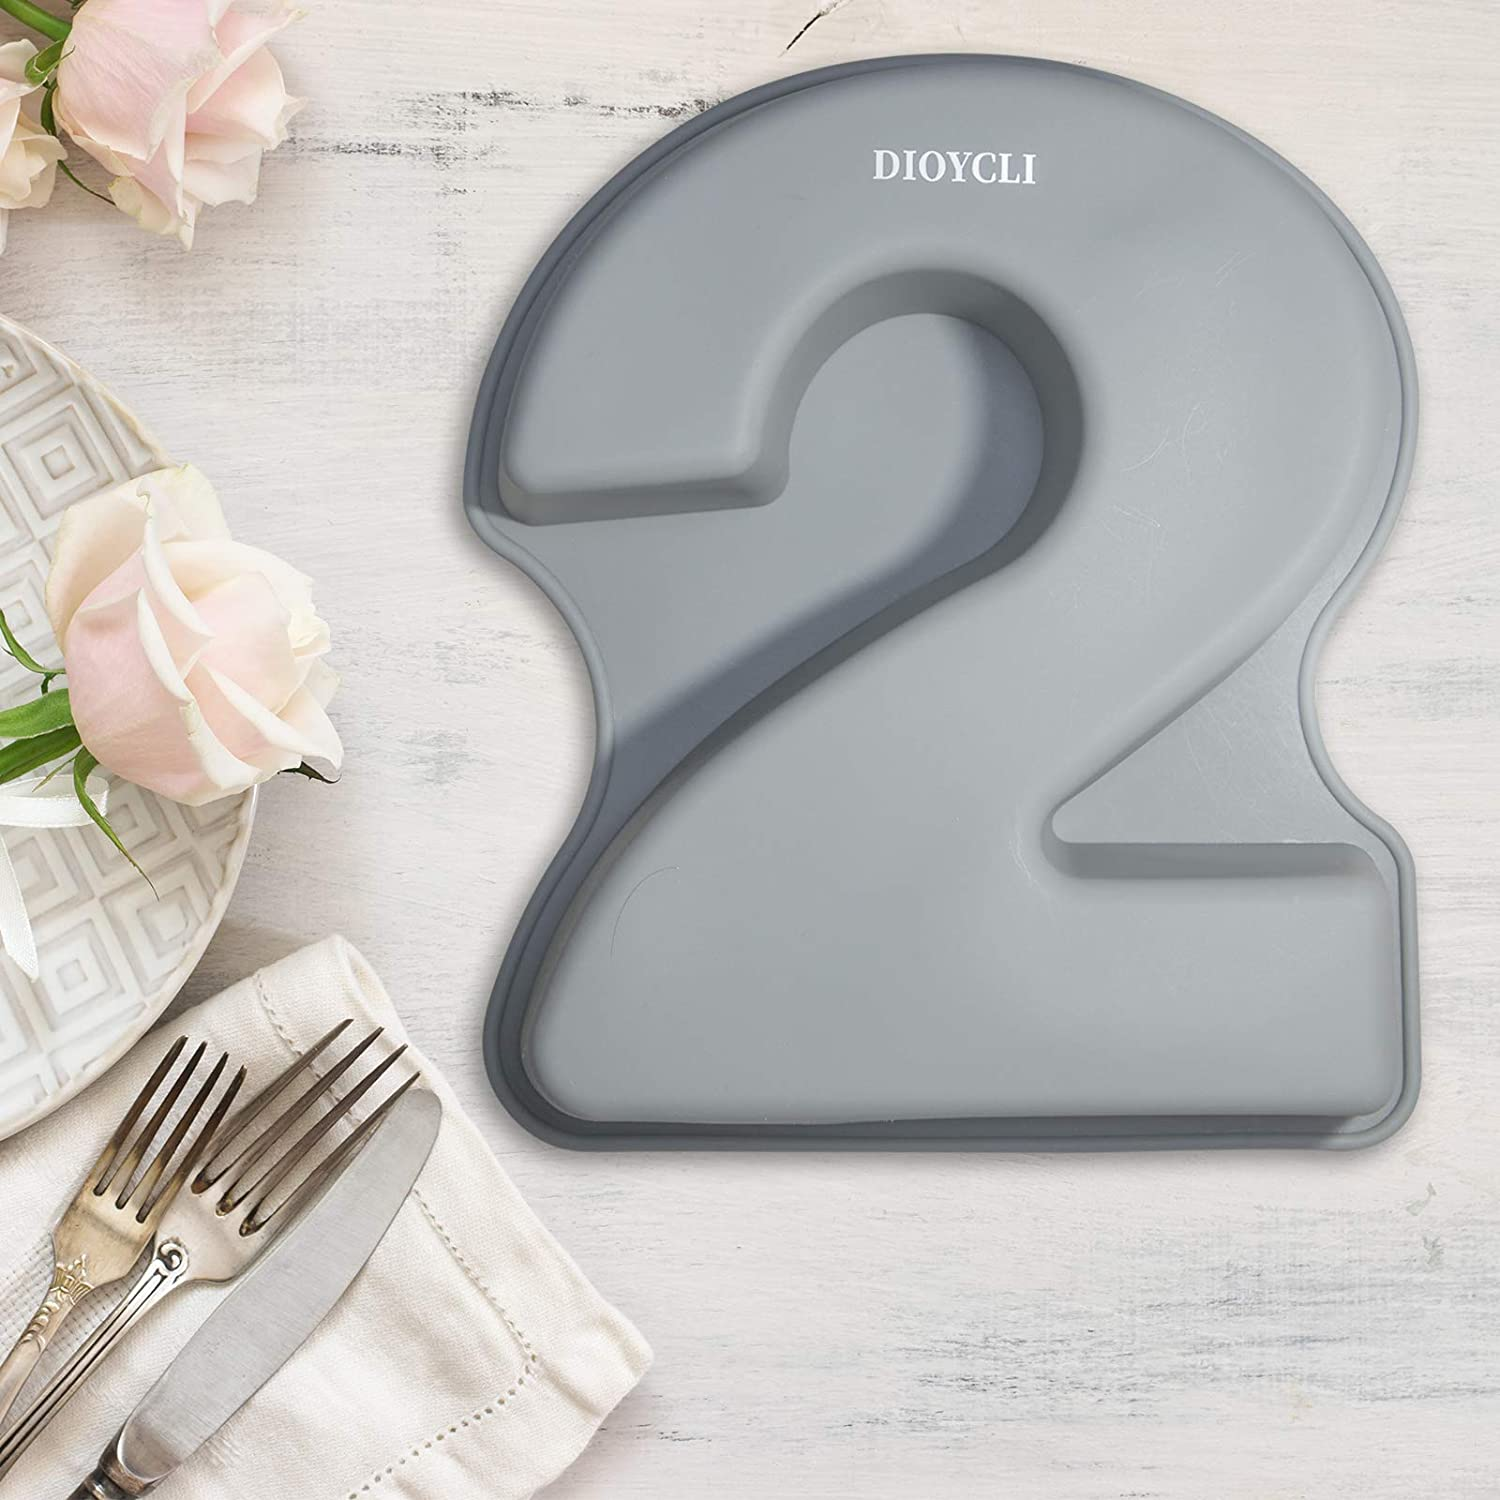 Silicone Cake Pans Large Number Cake Molds 3D Novelty Cake Moulds DIY Baking Mold for Birthday Wedding Anniversary Number of 2